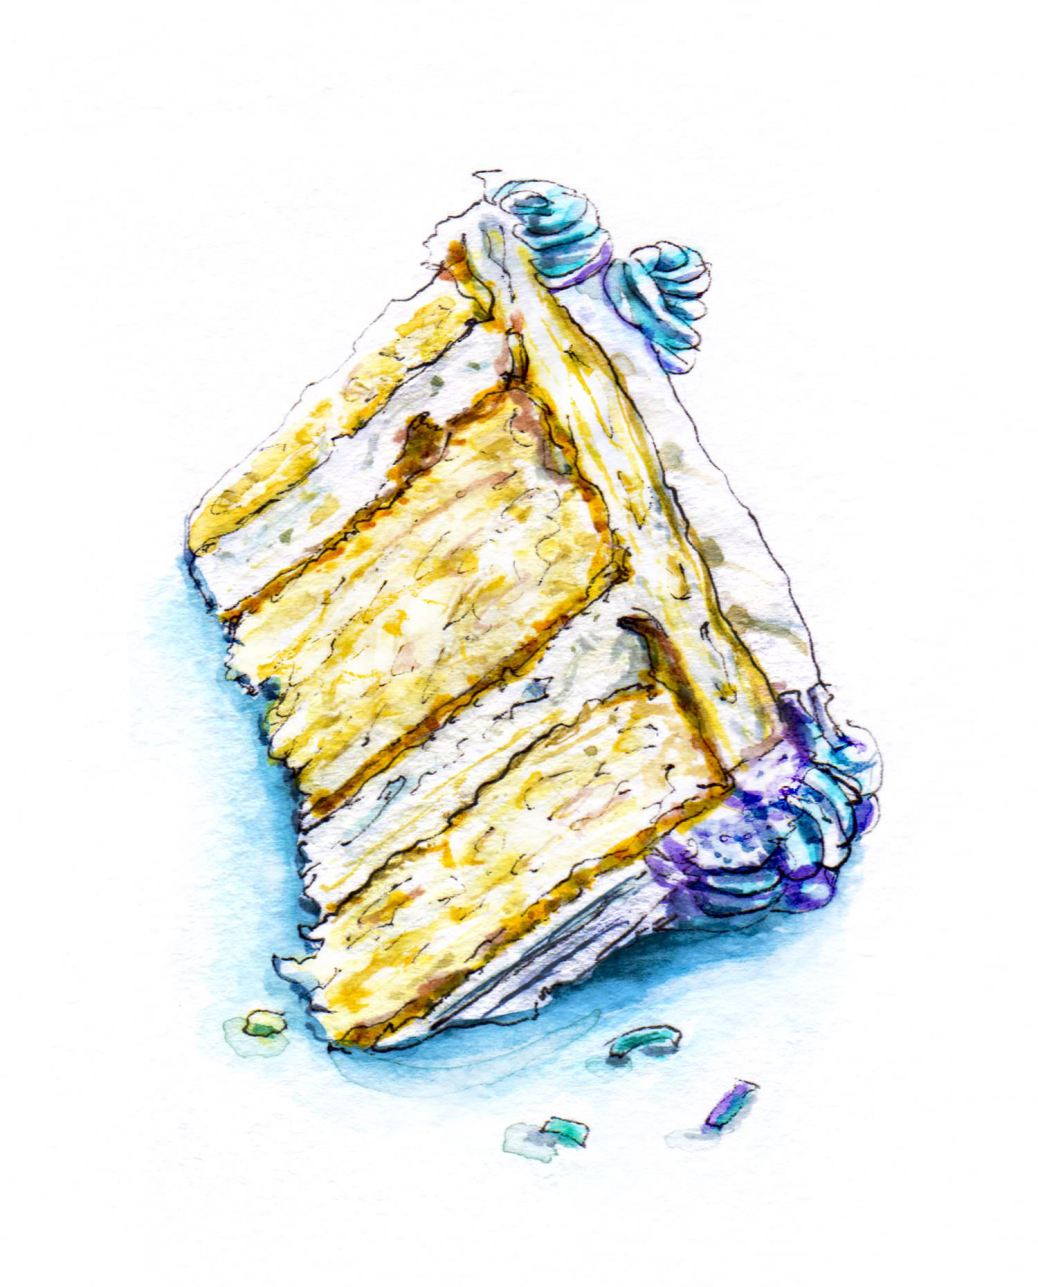 Day 13 - #WorldWatercolorGroup - Birthday Cake Slice Watercolor - #doodlewash